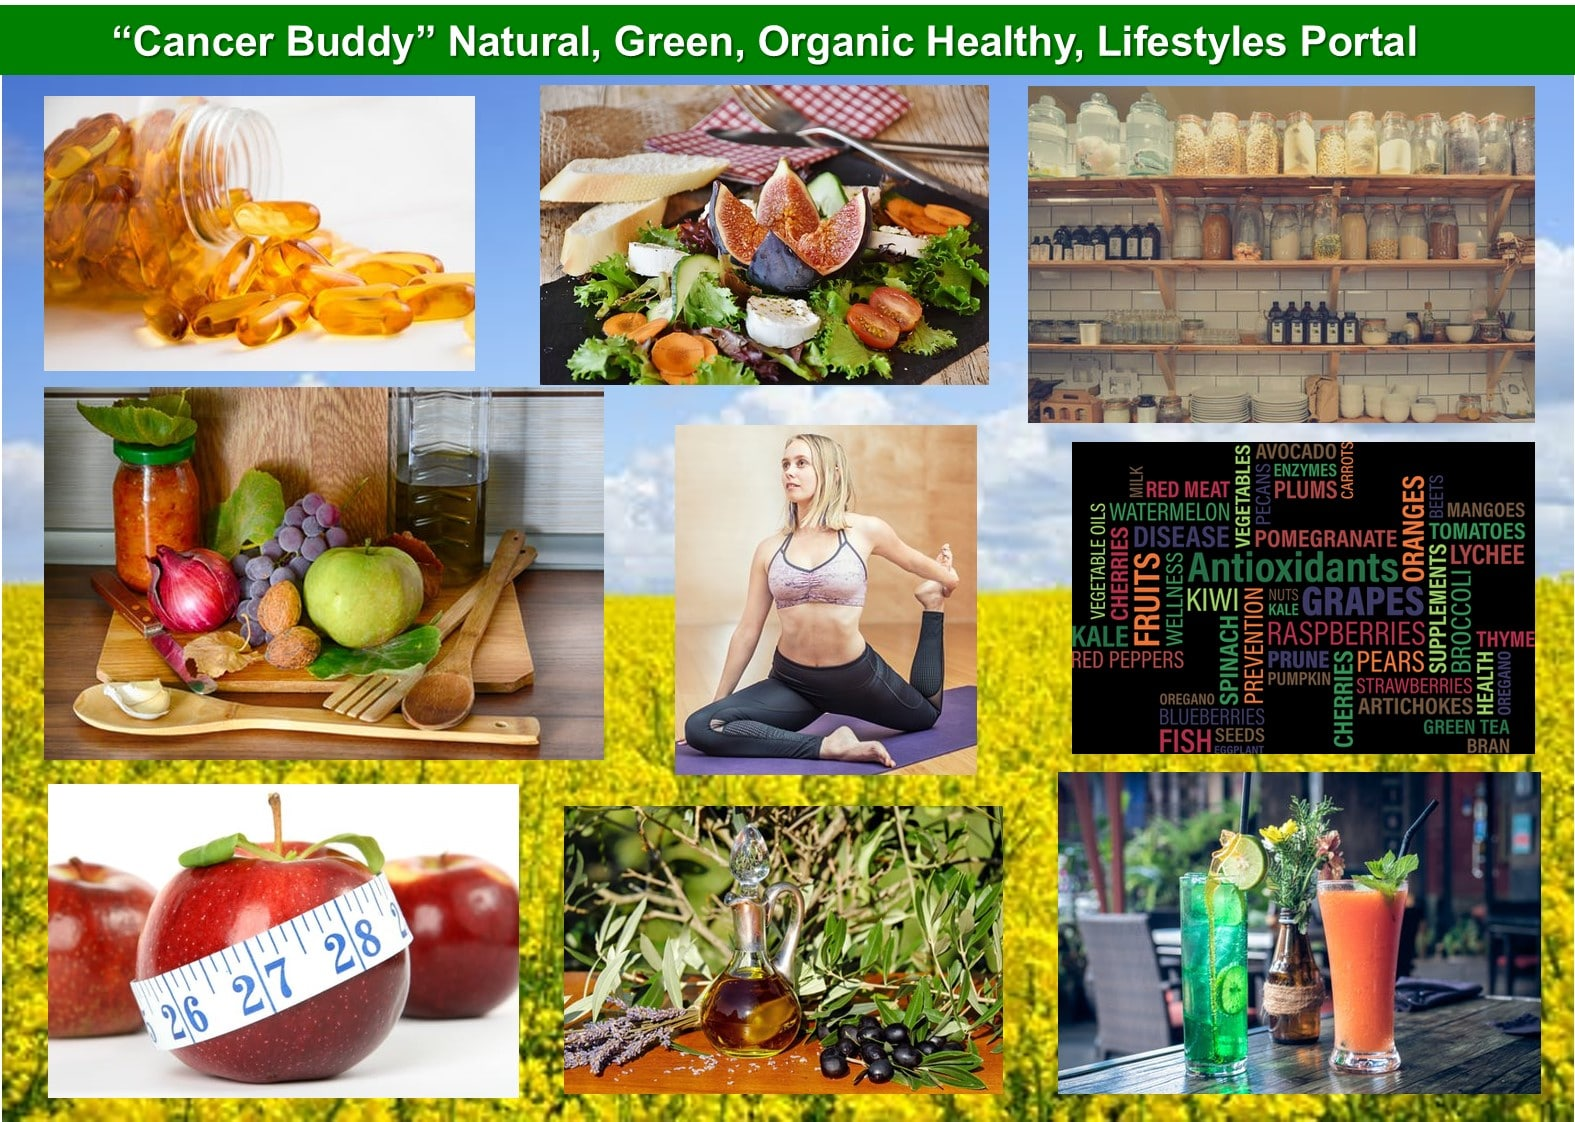 Green Organic healthy lifestyles Portal